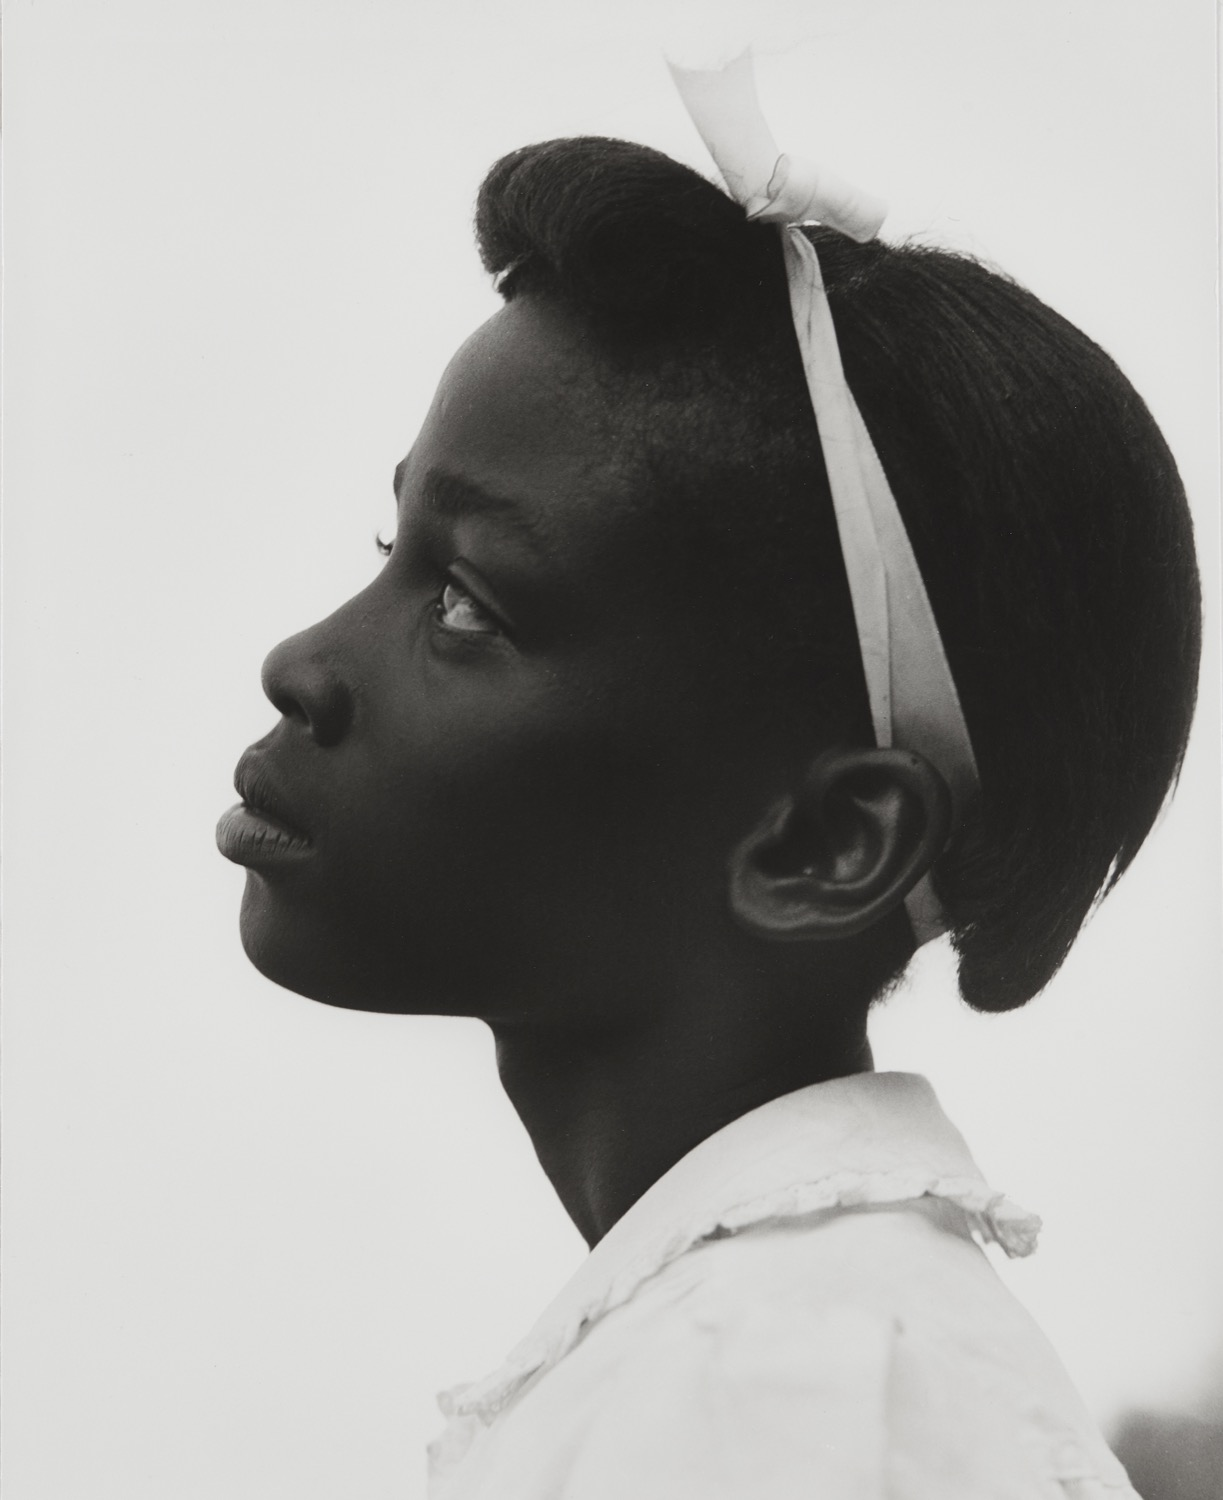 Consuelo Kanaga, Untitled (Profile of a Young Girl, from the Tennessee series), 1948 Gelatin silver print. 11 7/8 x 9 5/8 in. (30.2 x 24.4 cm) Credit stamp on the reverse of the mount. Image courtesy of Phillips. Estimate: $15,000-25,000 SOLD FOR $106,250